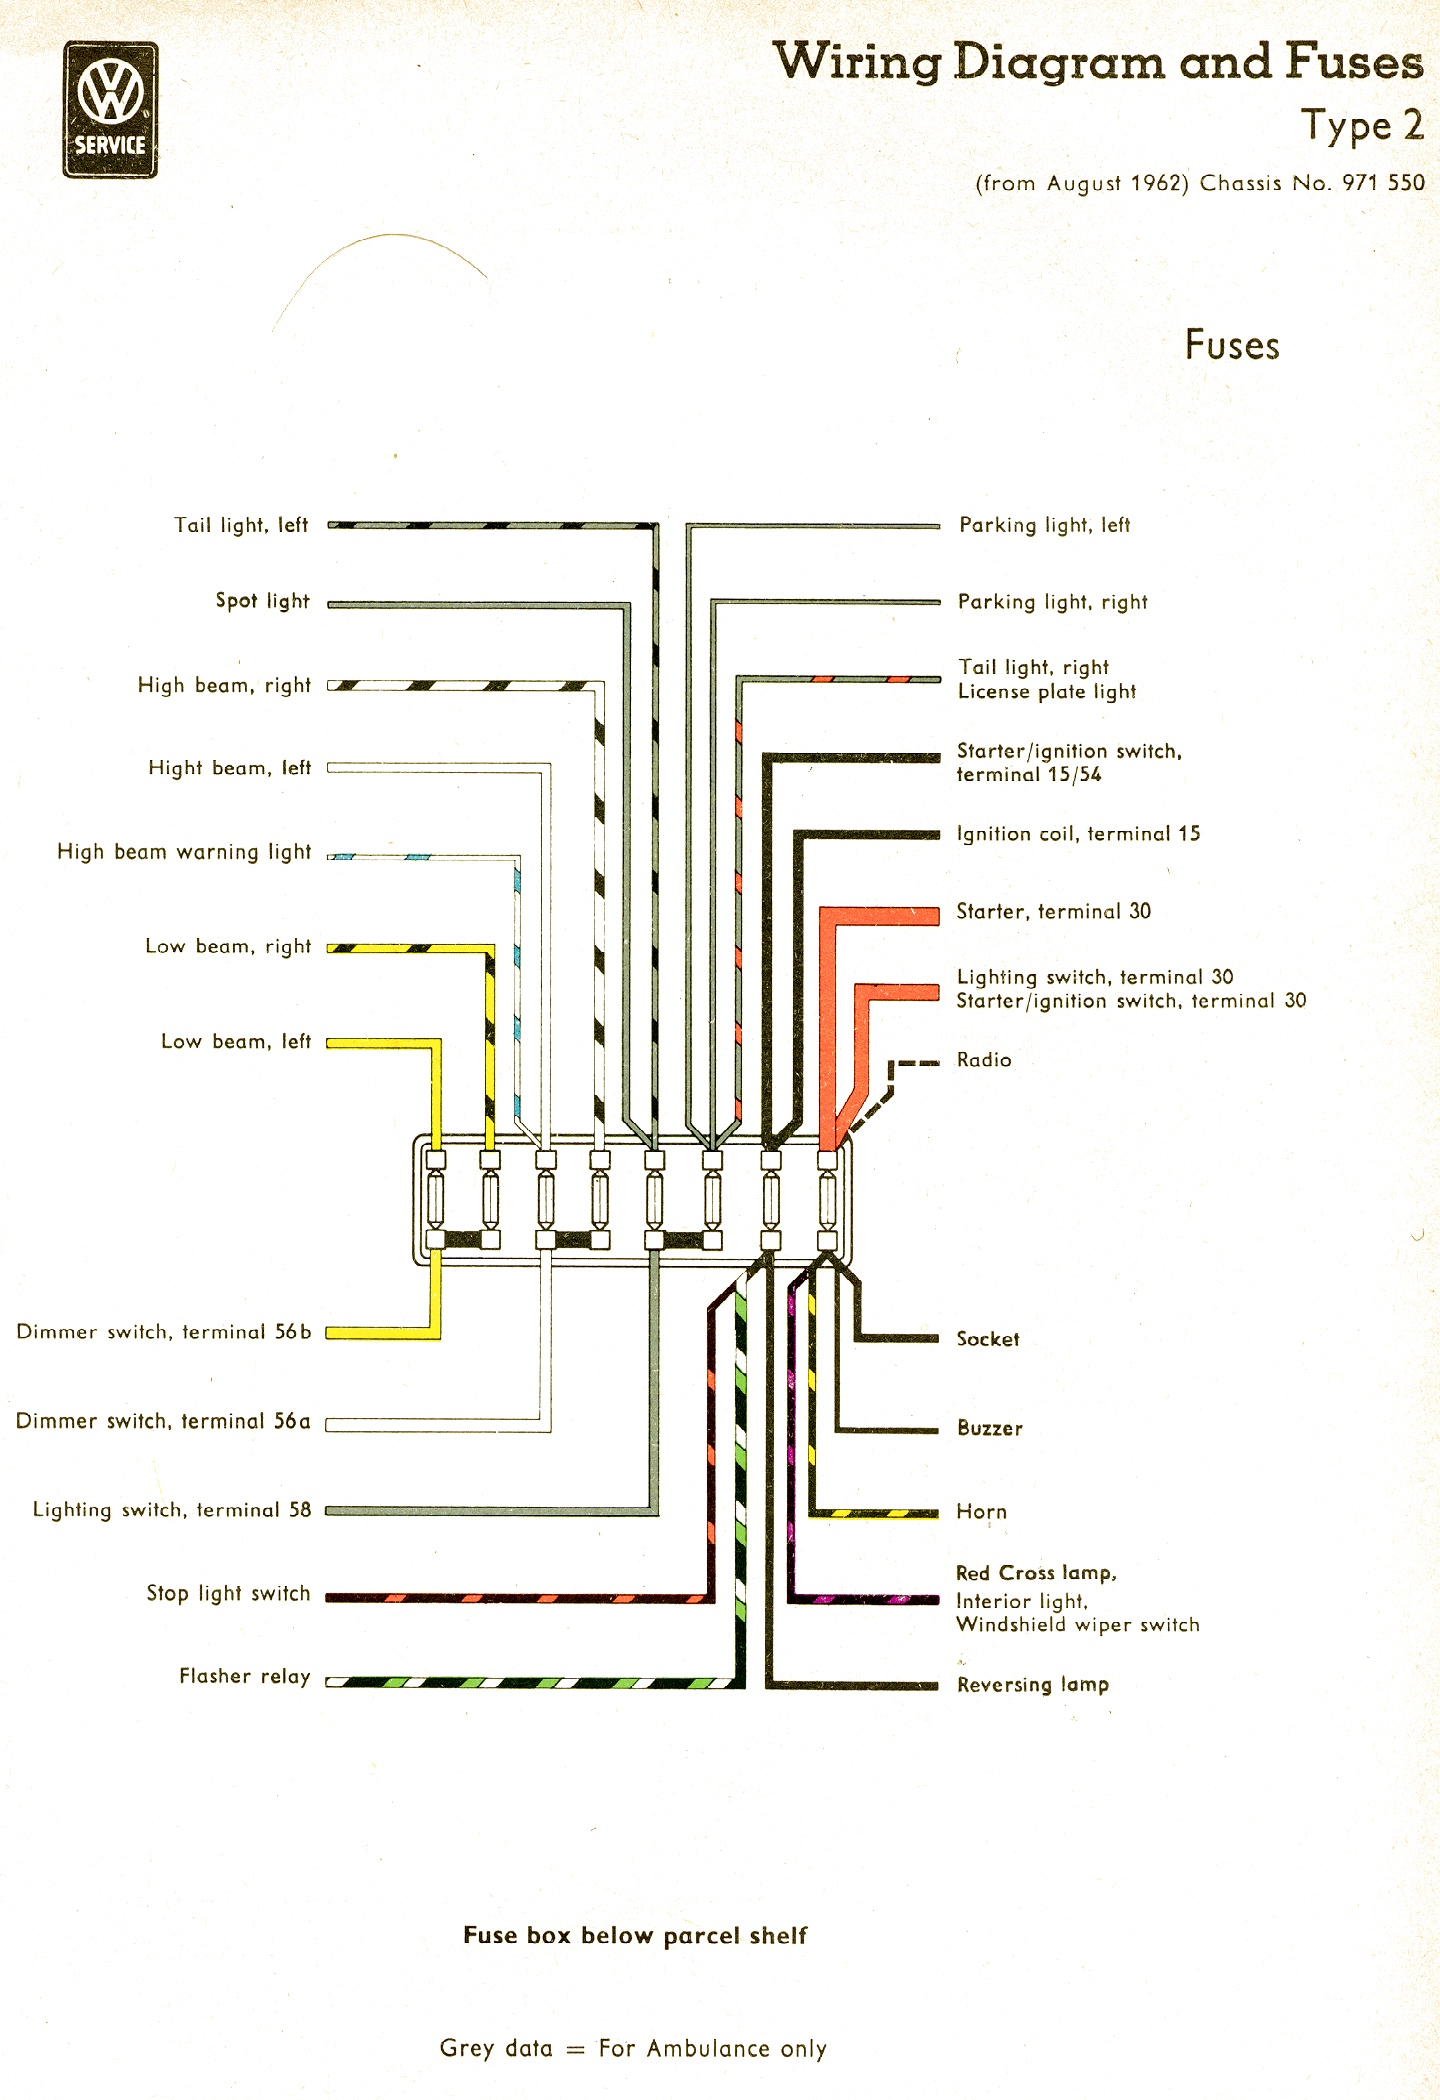 bus fuse box wiring diagram 2001 Volkswagen Beetle Wiring Diagram 1960 vw bus fuse box simple wiring diagramvintagebus com vw bus (and other) wiring